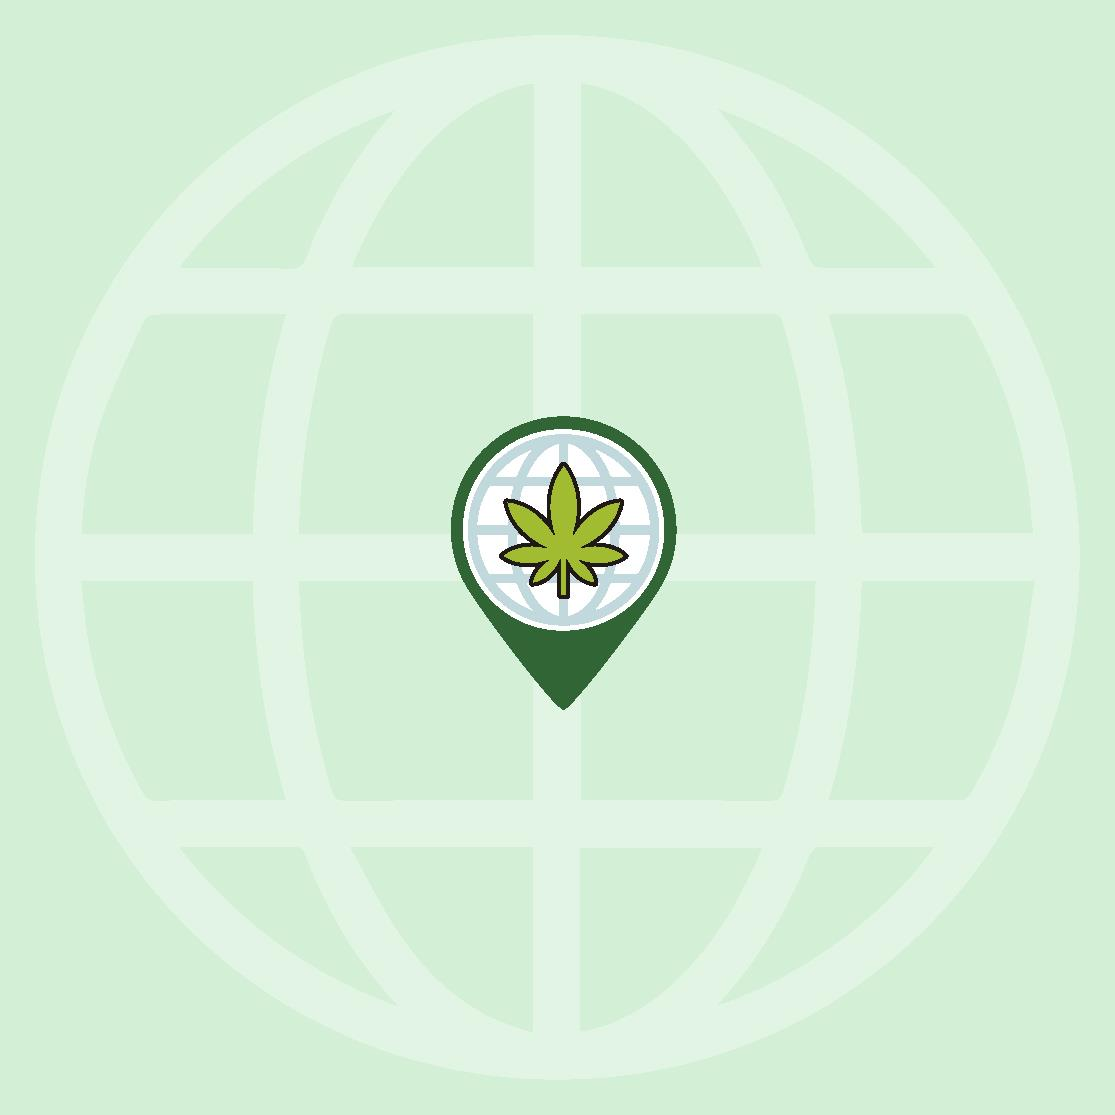 Asoc Green Planet Cannabis Club